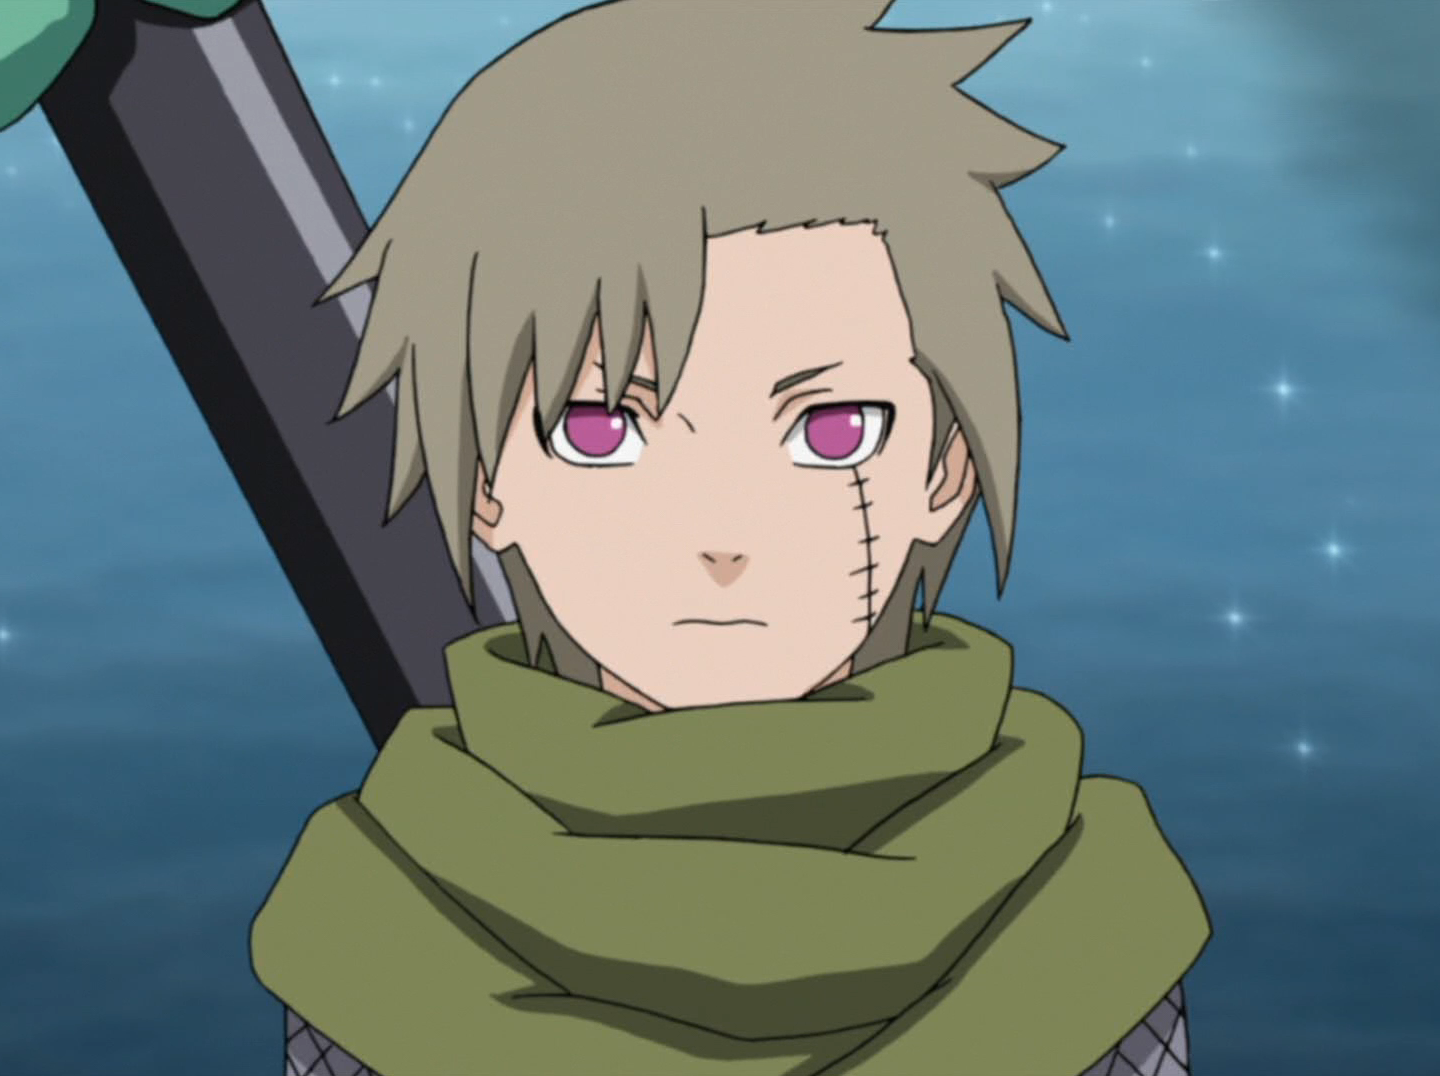 Yagura - Narutopedia, the Naruto Encyclopedia Wiki